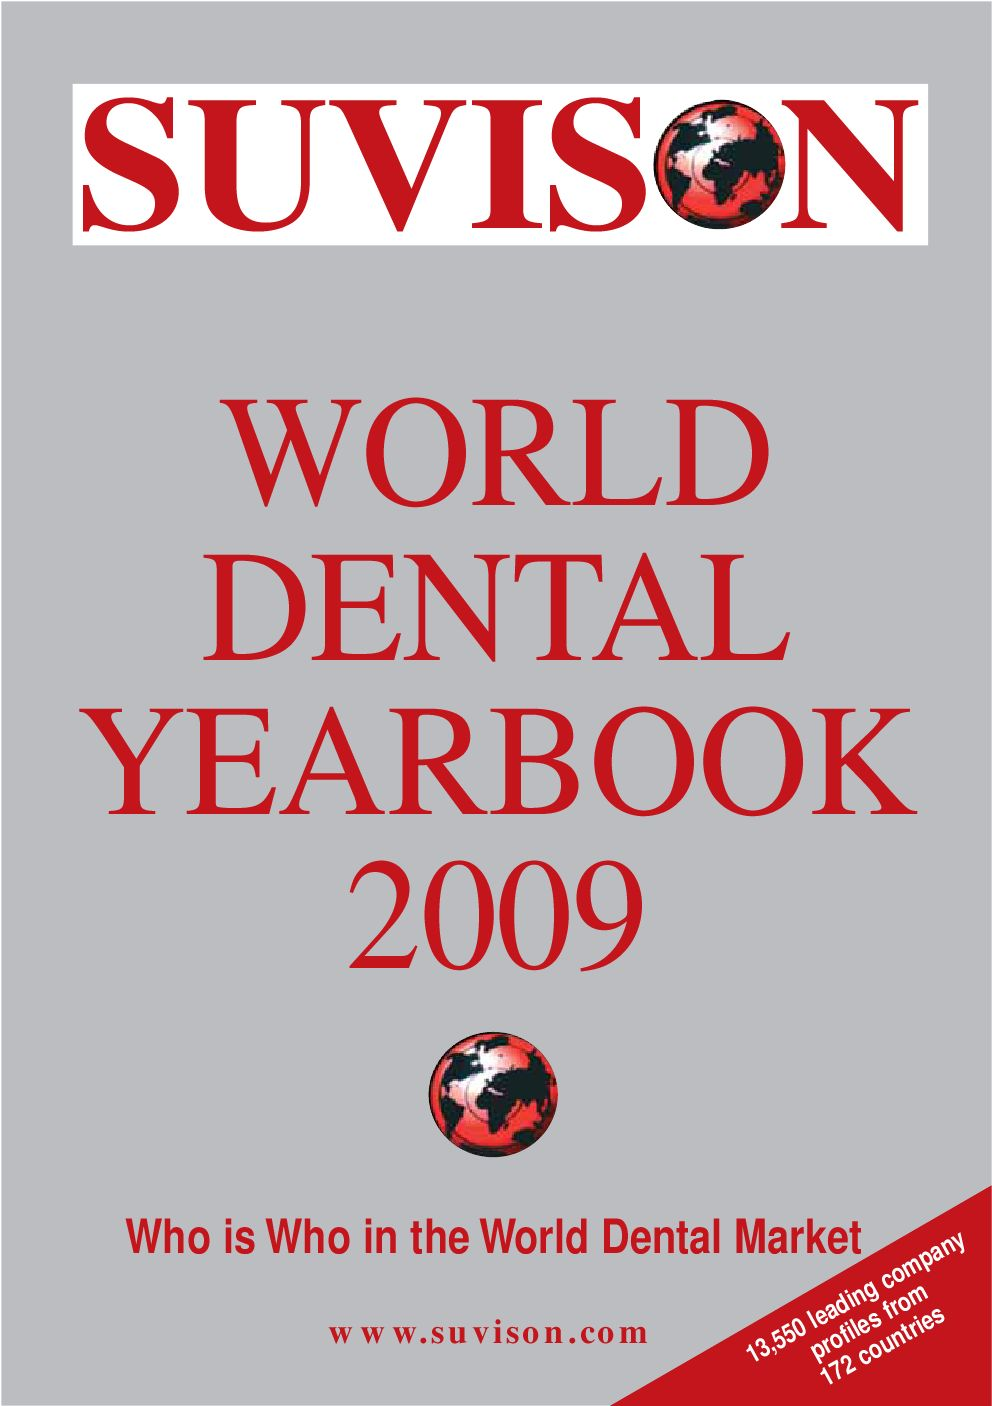 World dental yearbook by suvison business services issuu fandeluxe Choice Image